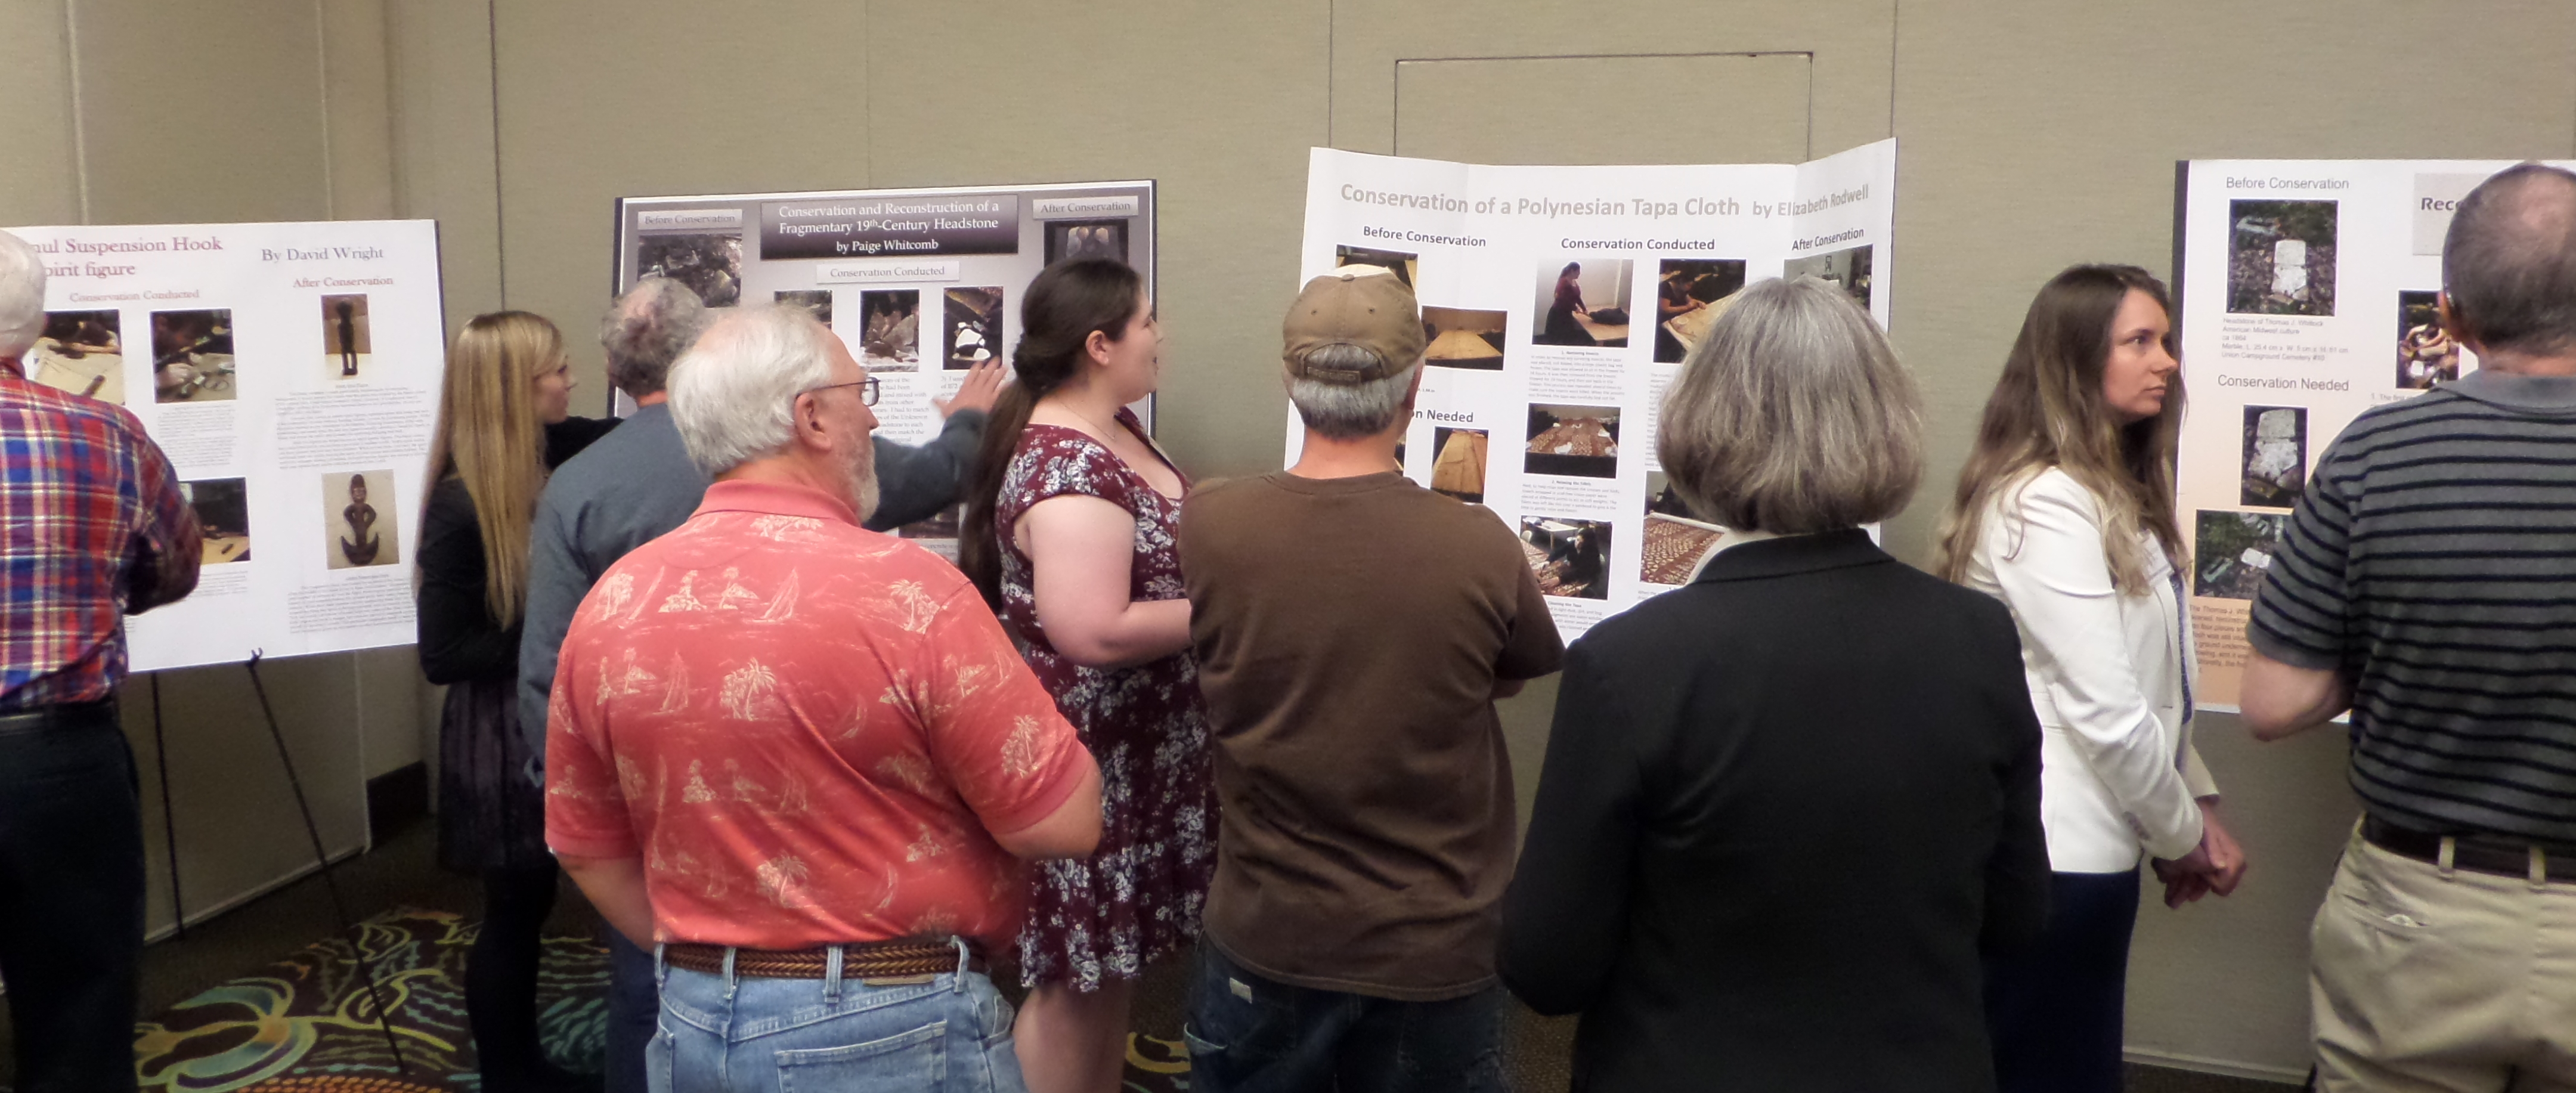 Five Missouri State Students and Alumni Present Research at Regional Conference